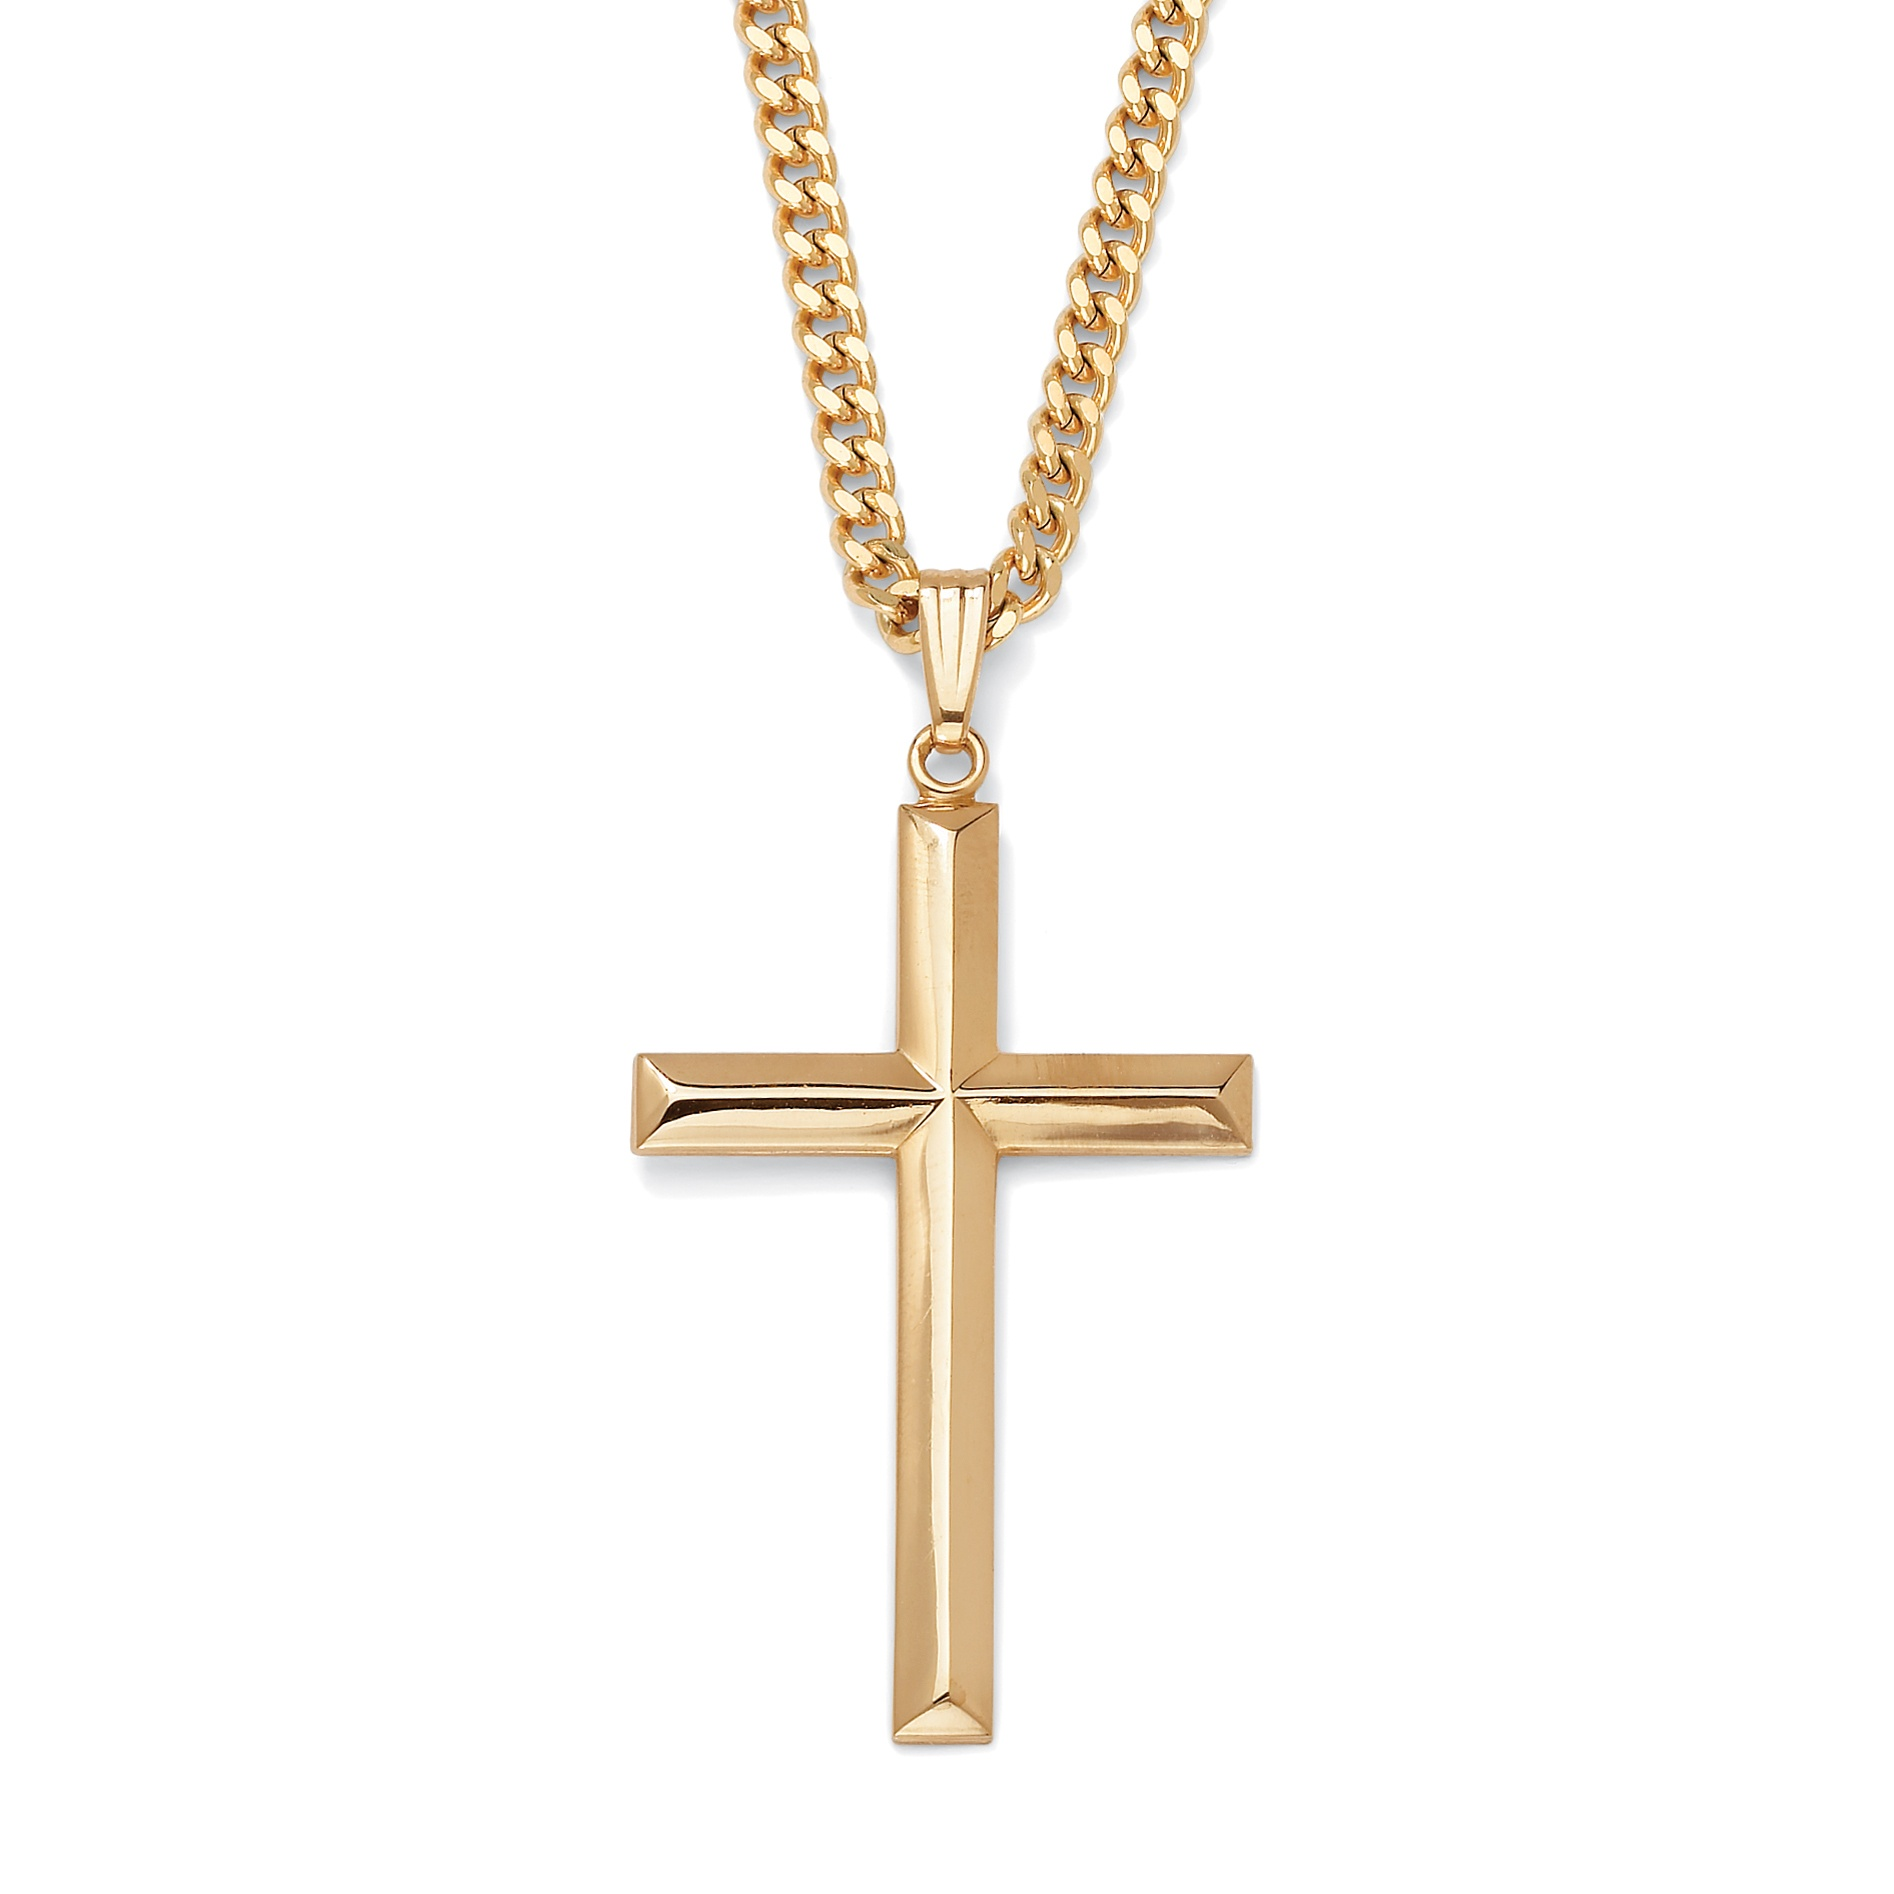 Cross pendant gold filled and gold ion plated chain 24 at palmbeach cross pendant gold filled and gold ion plated chain 24 at palmbeach jewelry aloadofball